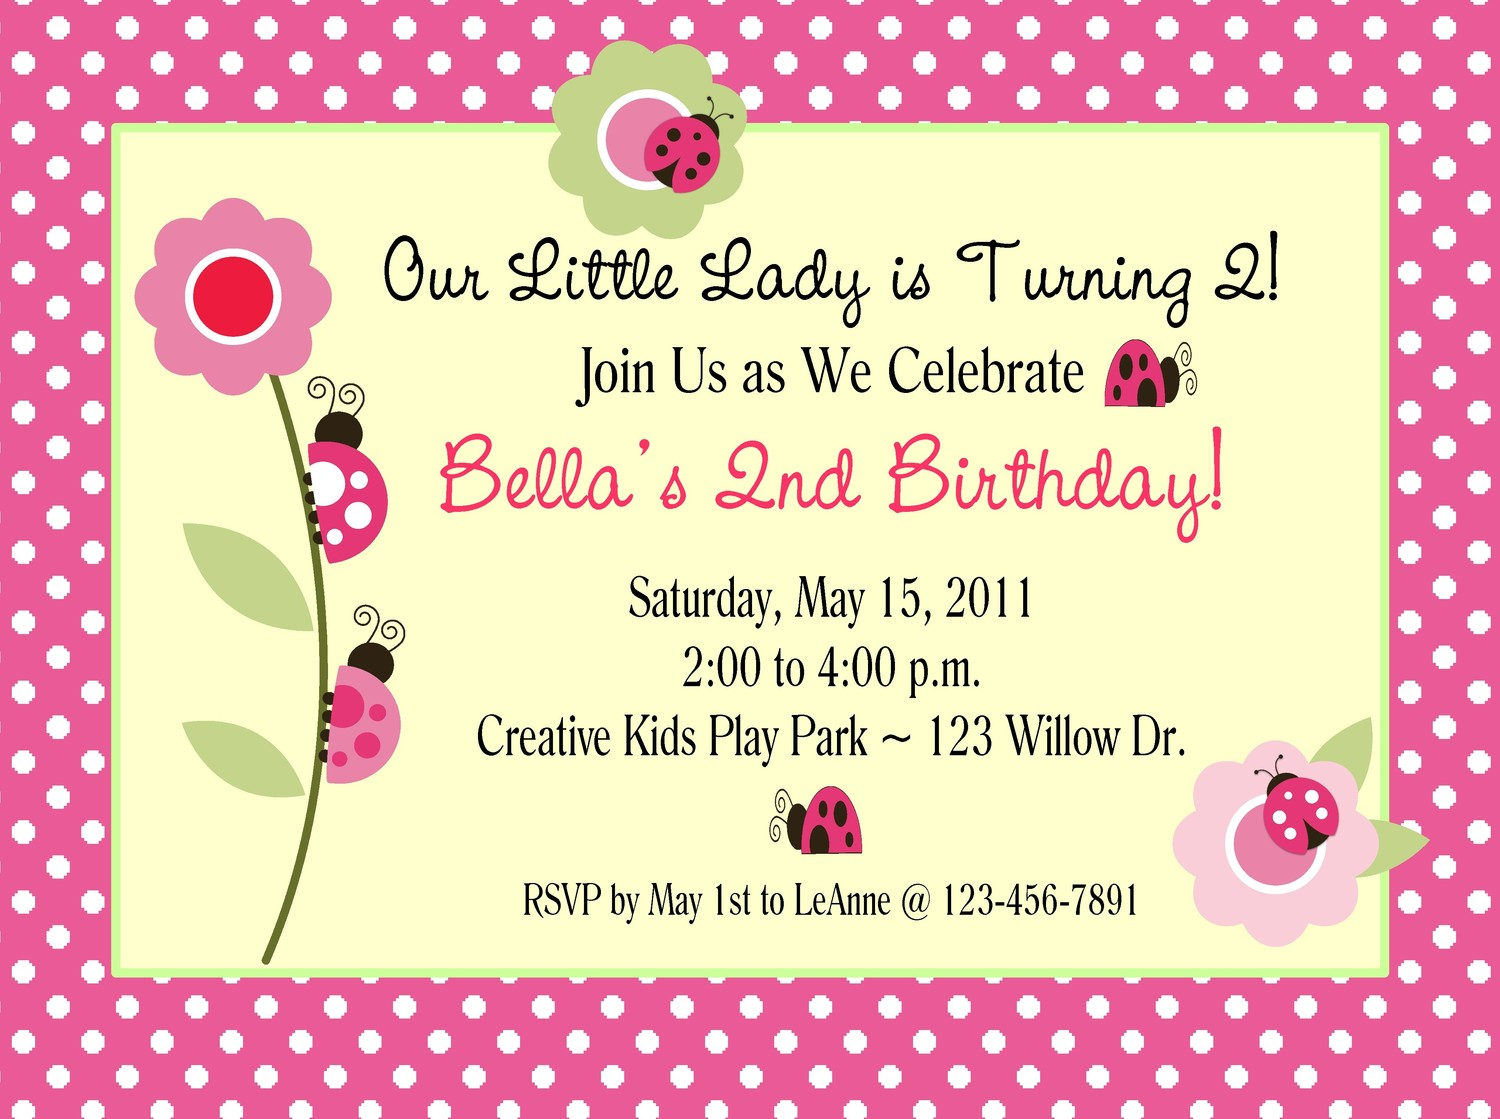 design your own photo birthday invitations ; Awesome-Birthday-Party-Invites-To-Make-Birthday-Invitation-Cards